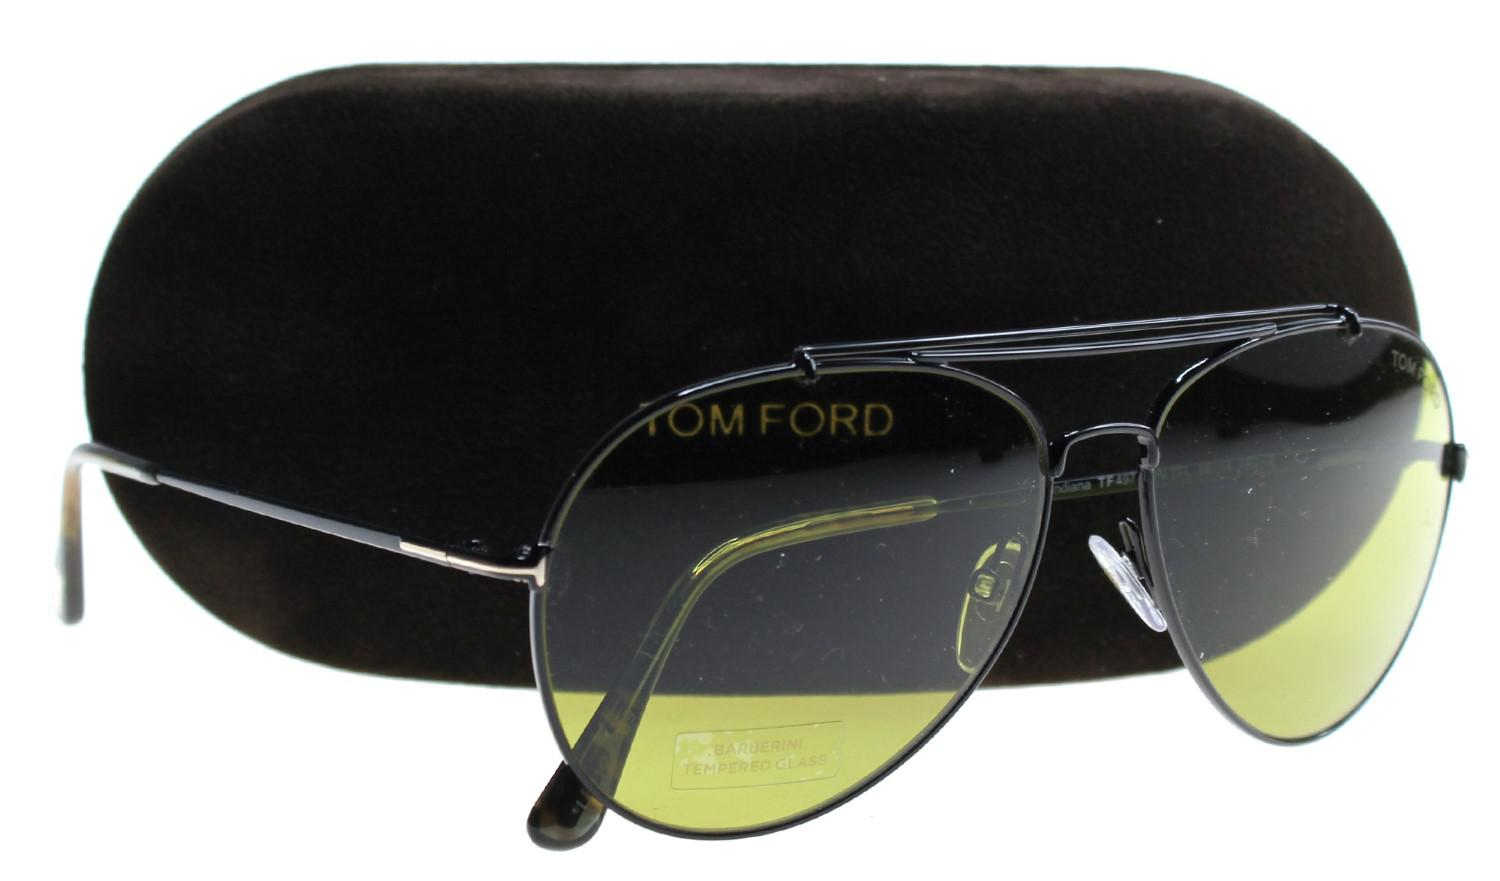 037abbd67f Tom Ford Sunglasses Indiana Tf 497 Ft 01n Shiny Black   Green in ...